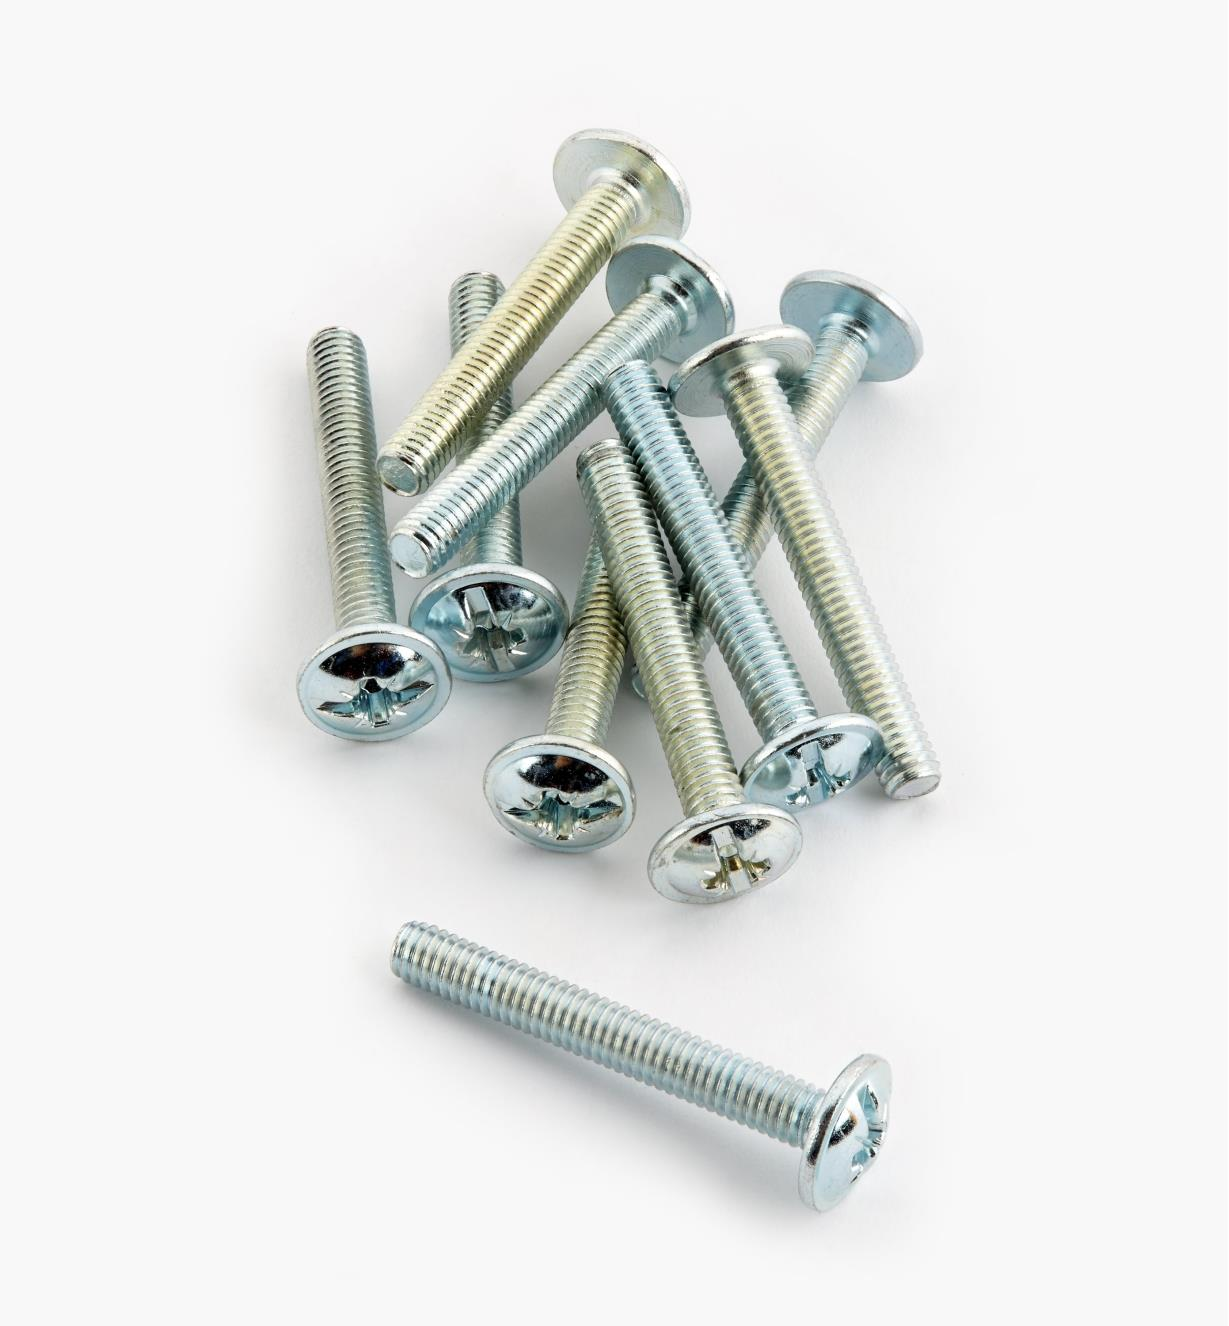 00N3330 - 30mm M4 Bolts, pkg. of 10